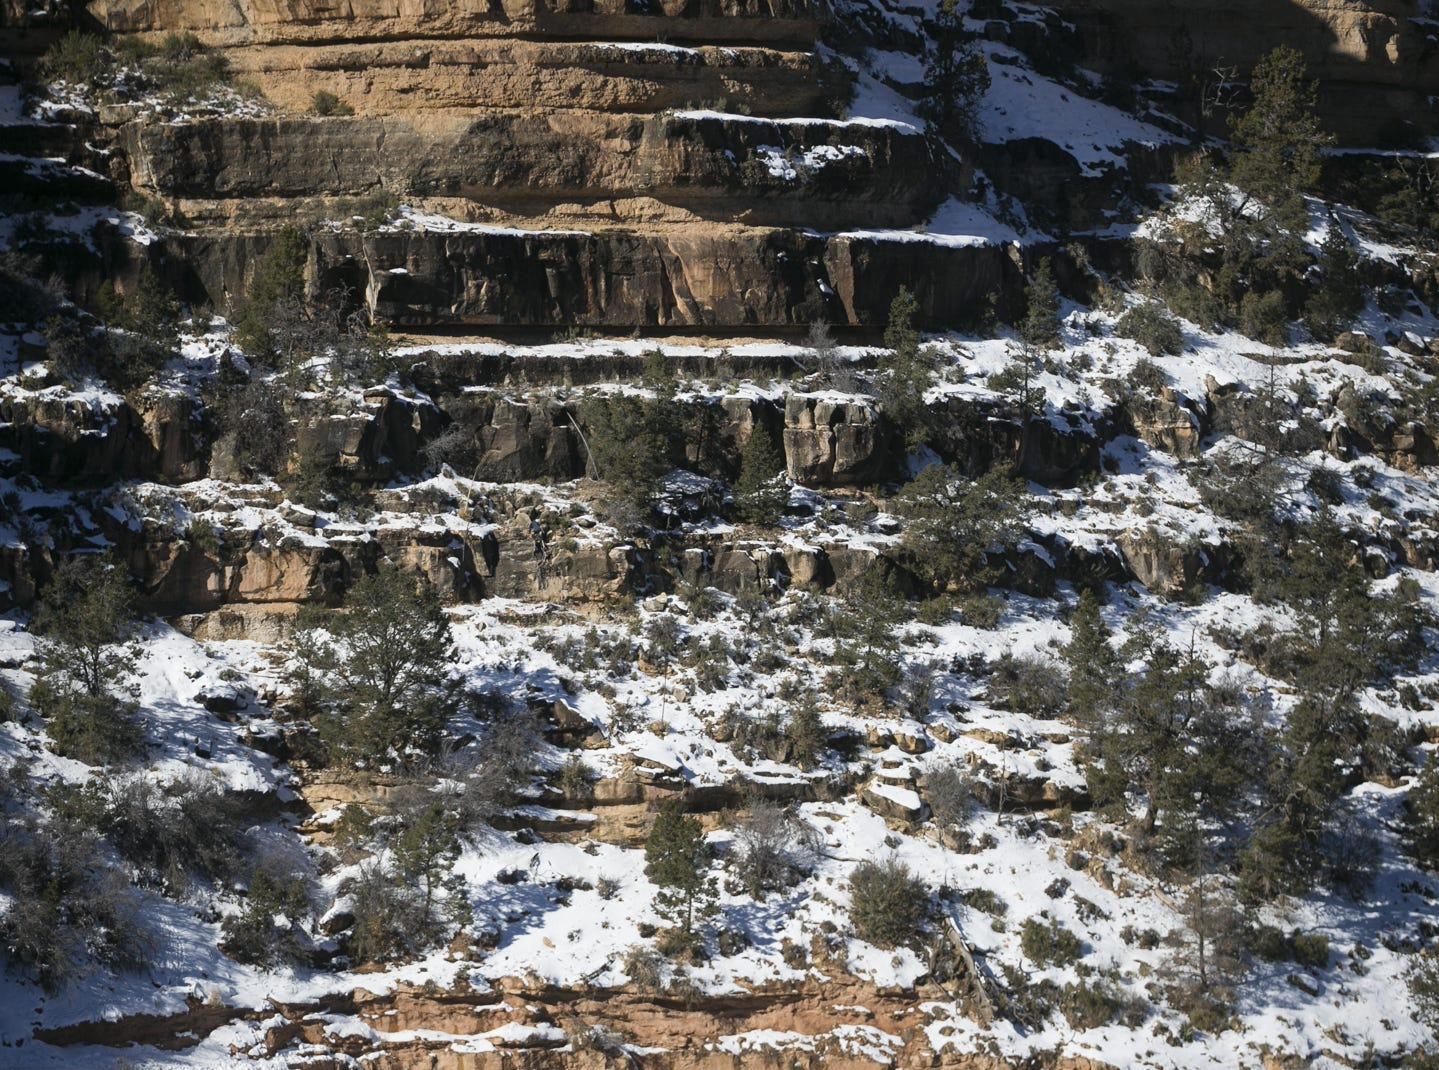 Snow rests along a cliff wall at Grand Canyon National Park on Jan. 4, 2019. The park was staffed at minimum capacity due to the government shutdown but retained much of its services due to an executive order issued by Arizona Gov. Doug Ducey to run the park with state funds in the event of a shutdown.